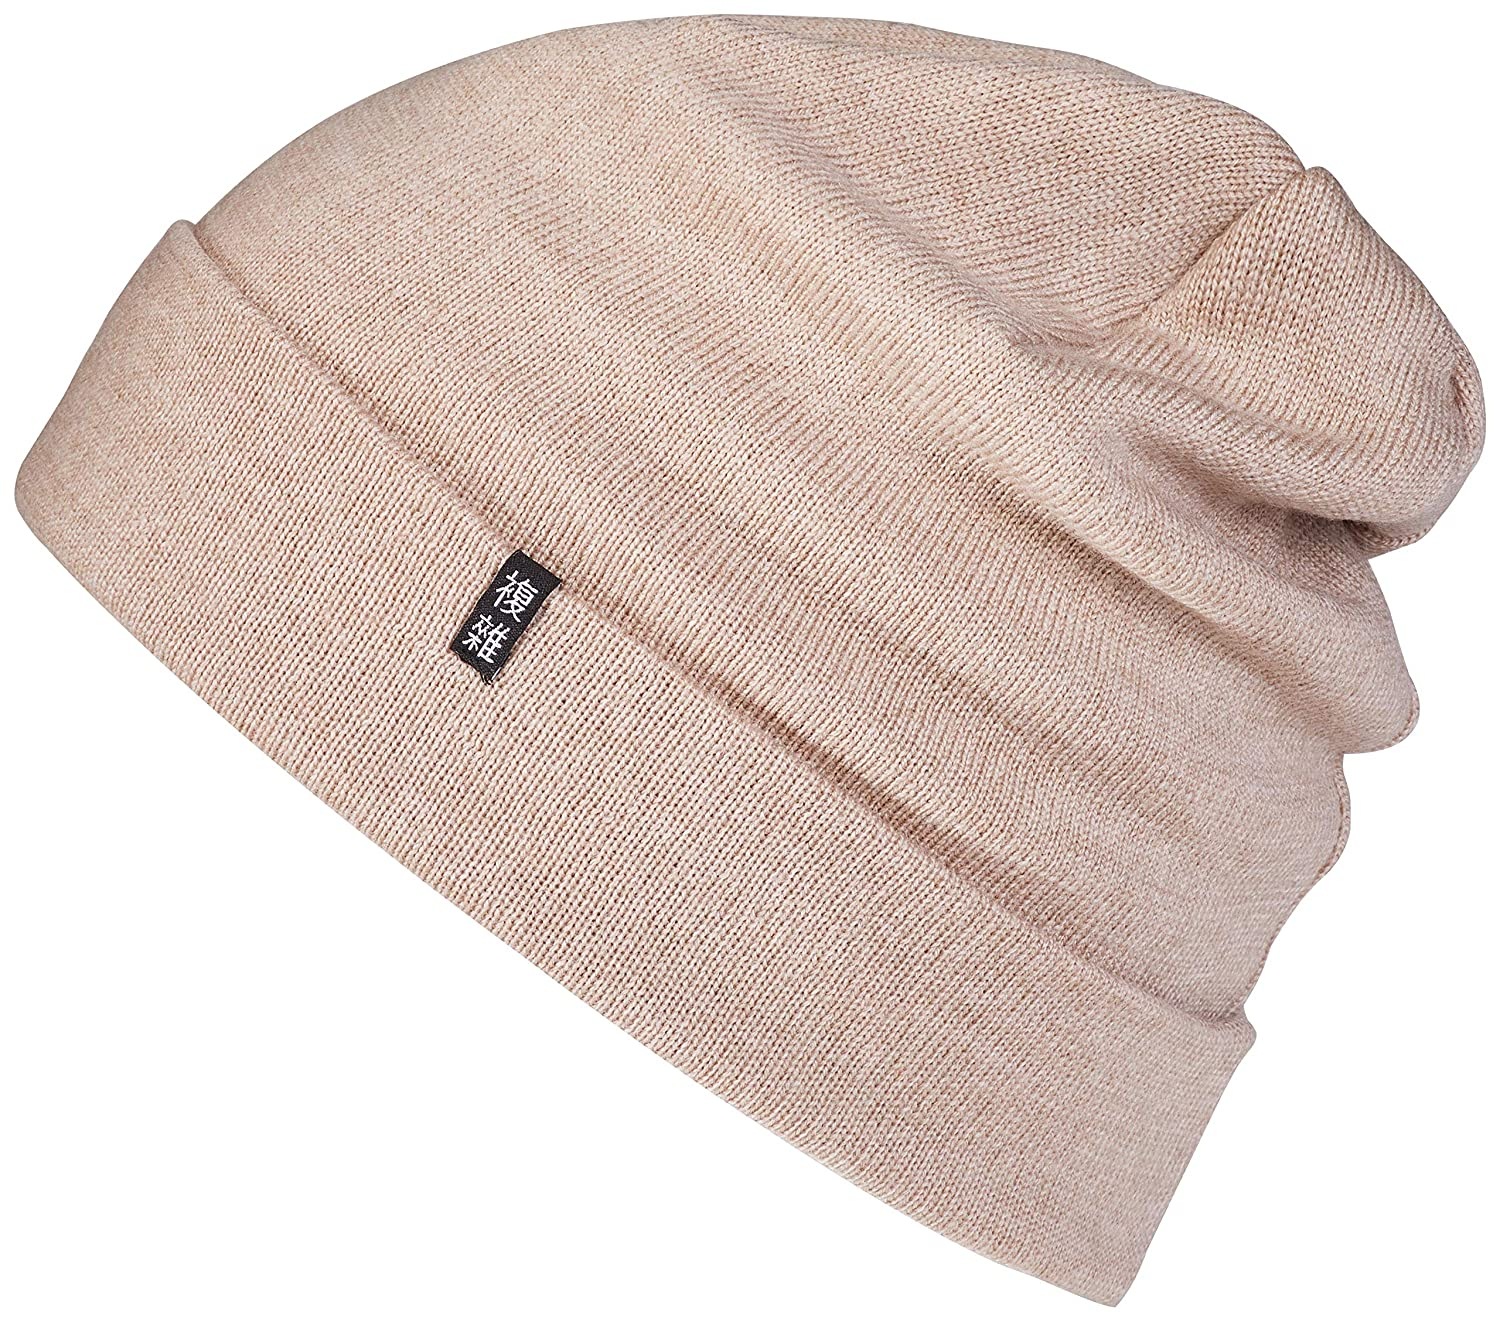 5e48bdfe6b Enter the Complex Merino Beanie Hat 2 Layer Fine Knit Warm and Thin for Men  and Women - Beige - One Size Fits All: Amazon.co.uk: Clothing